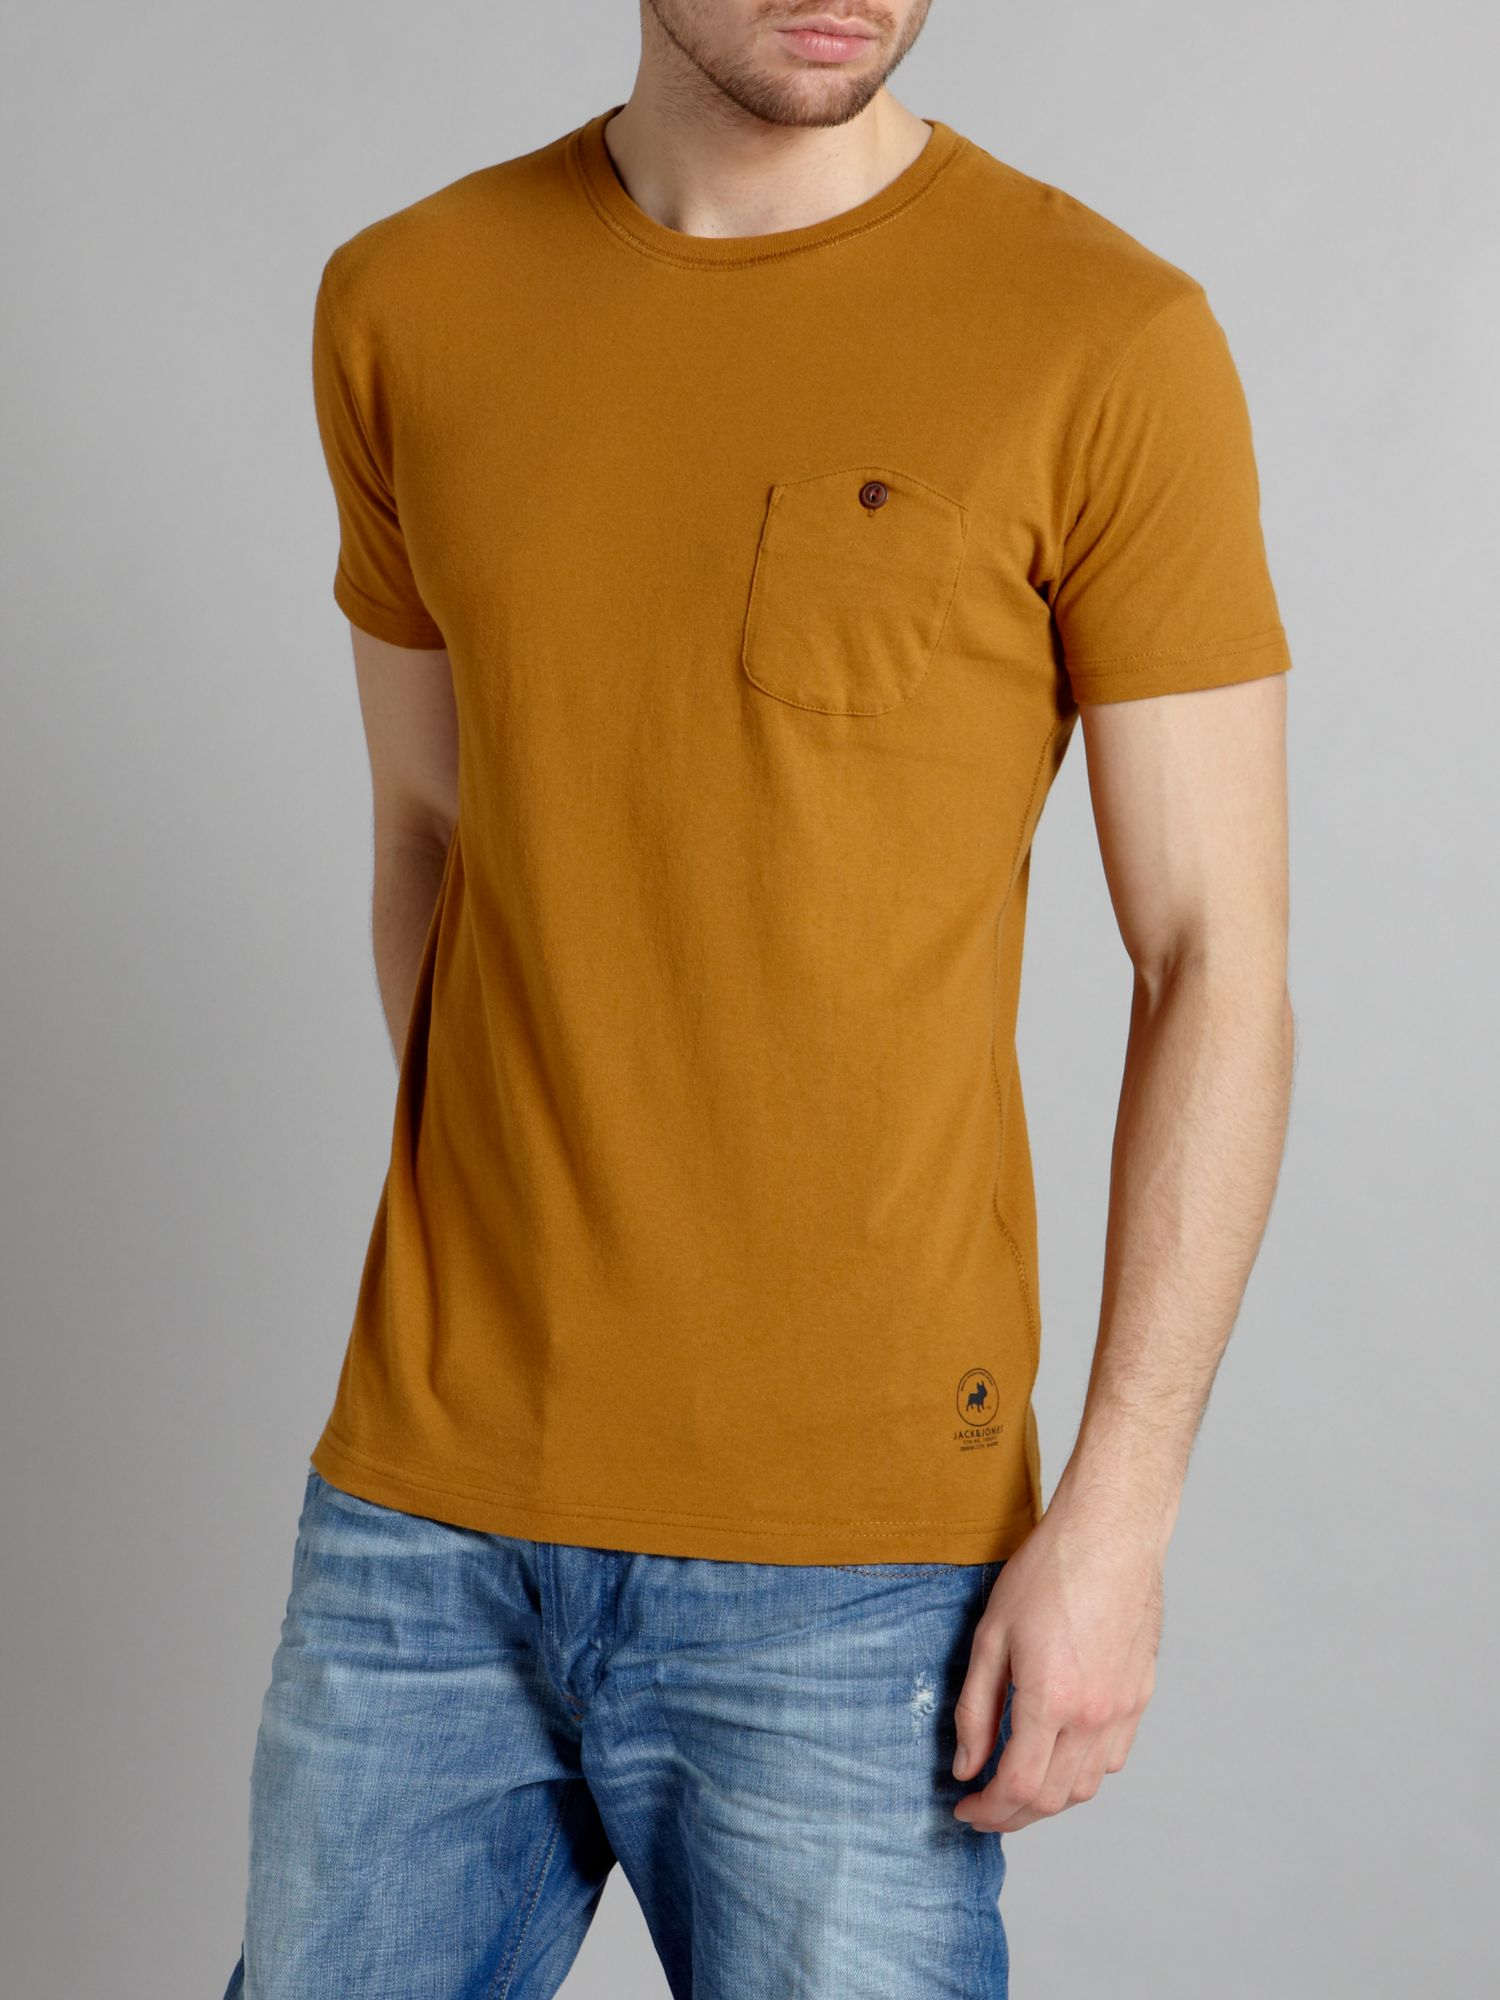 Short sleeved pocket detail T-shirt